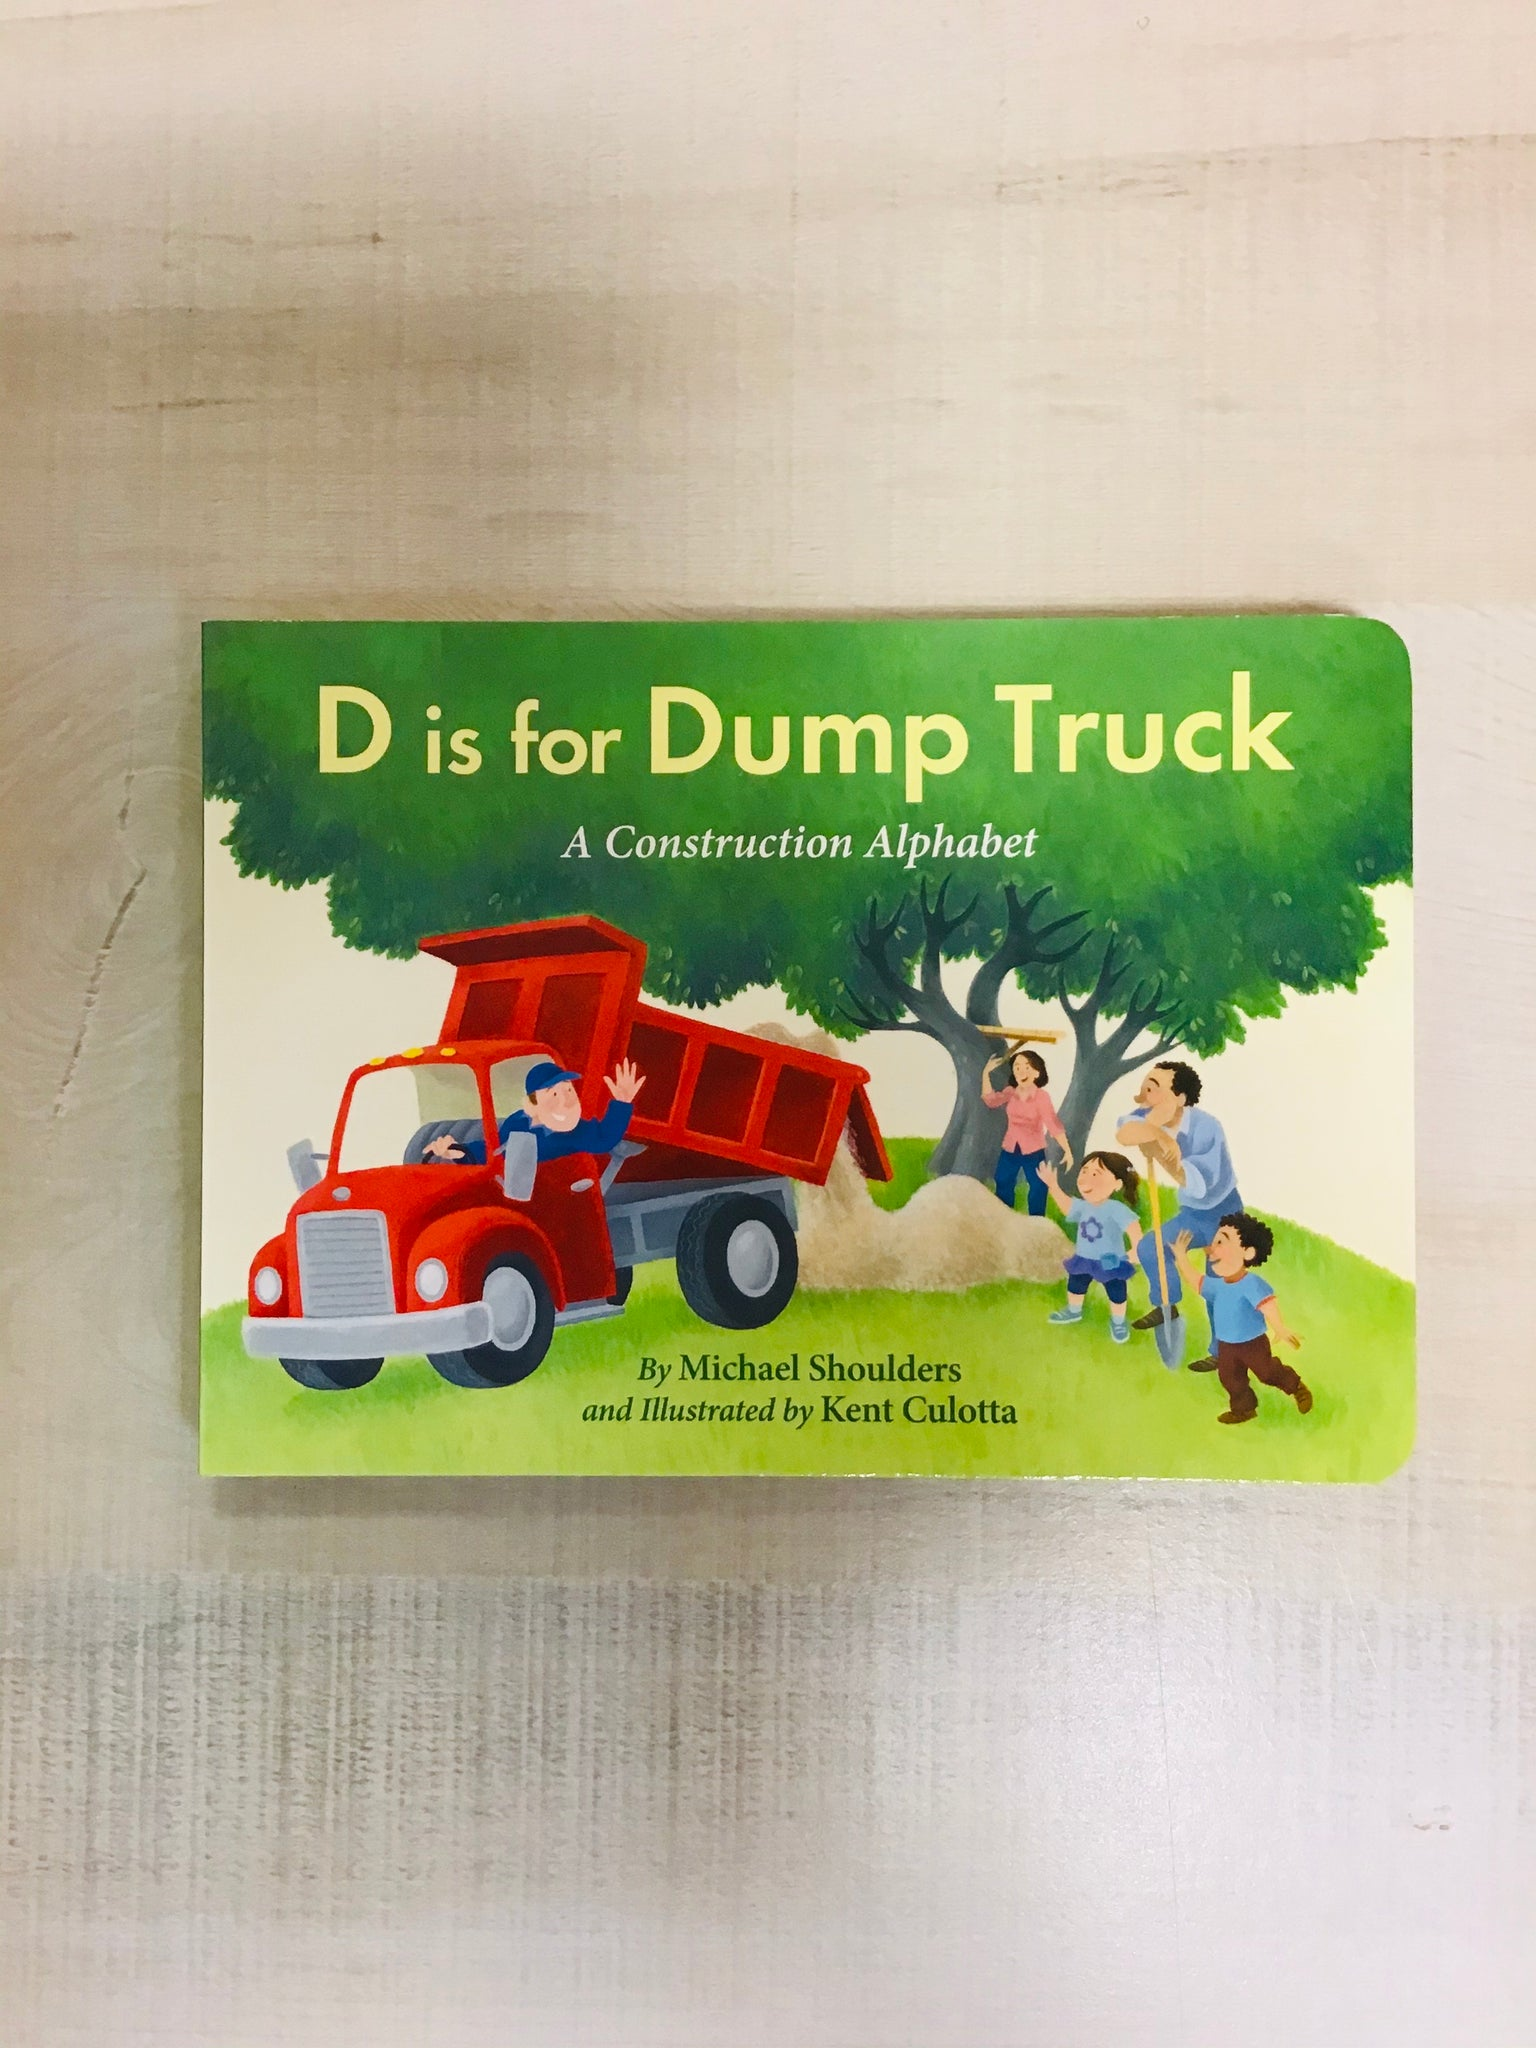 D is for Dumptruck